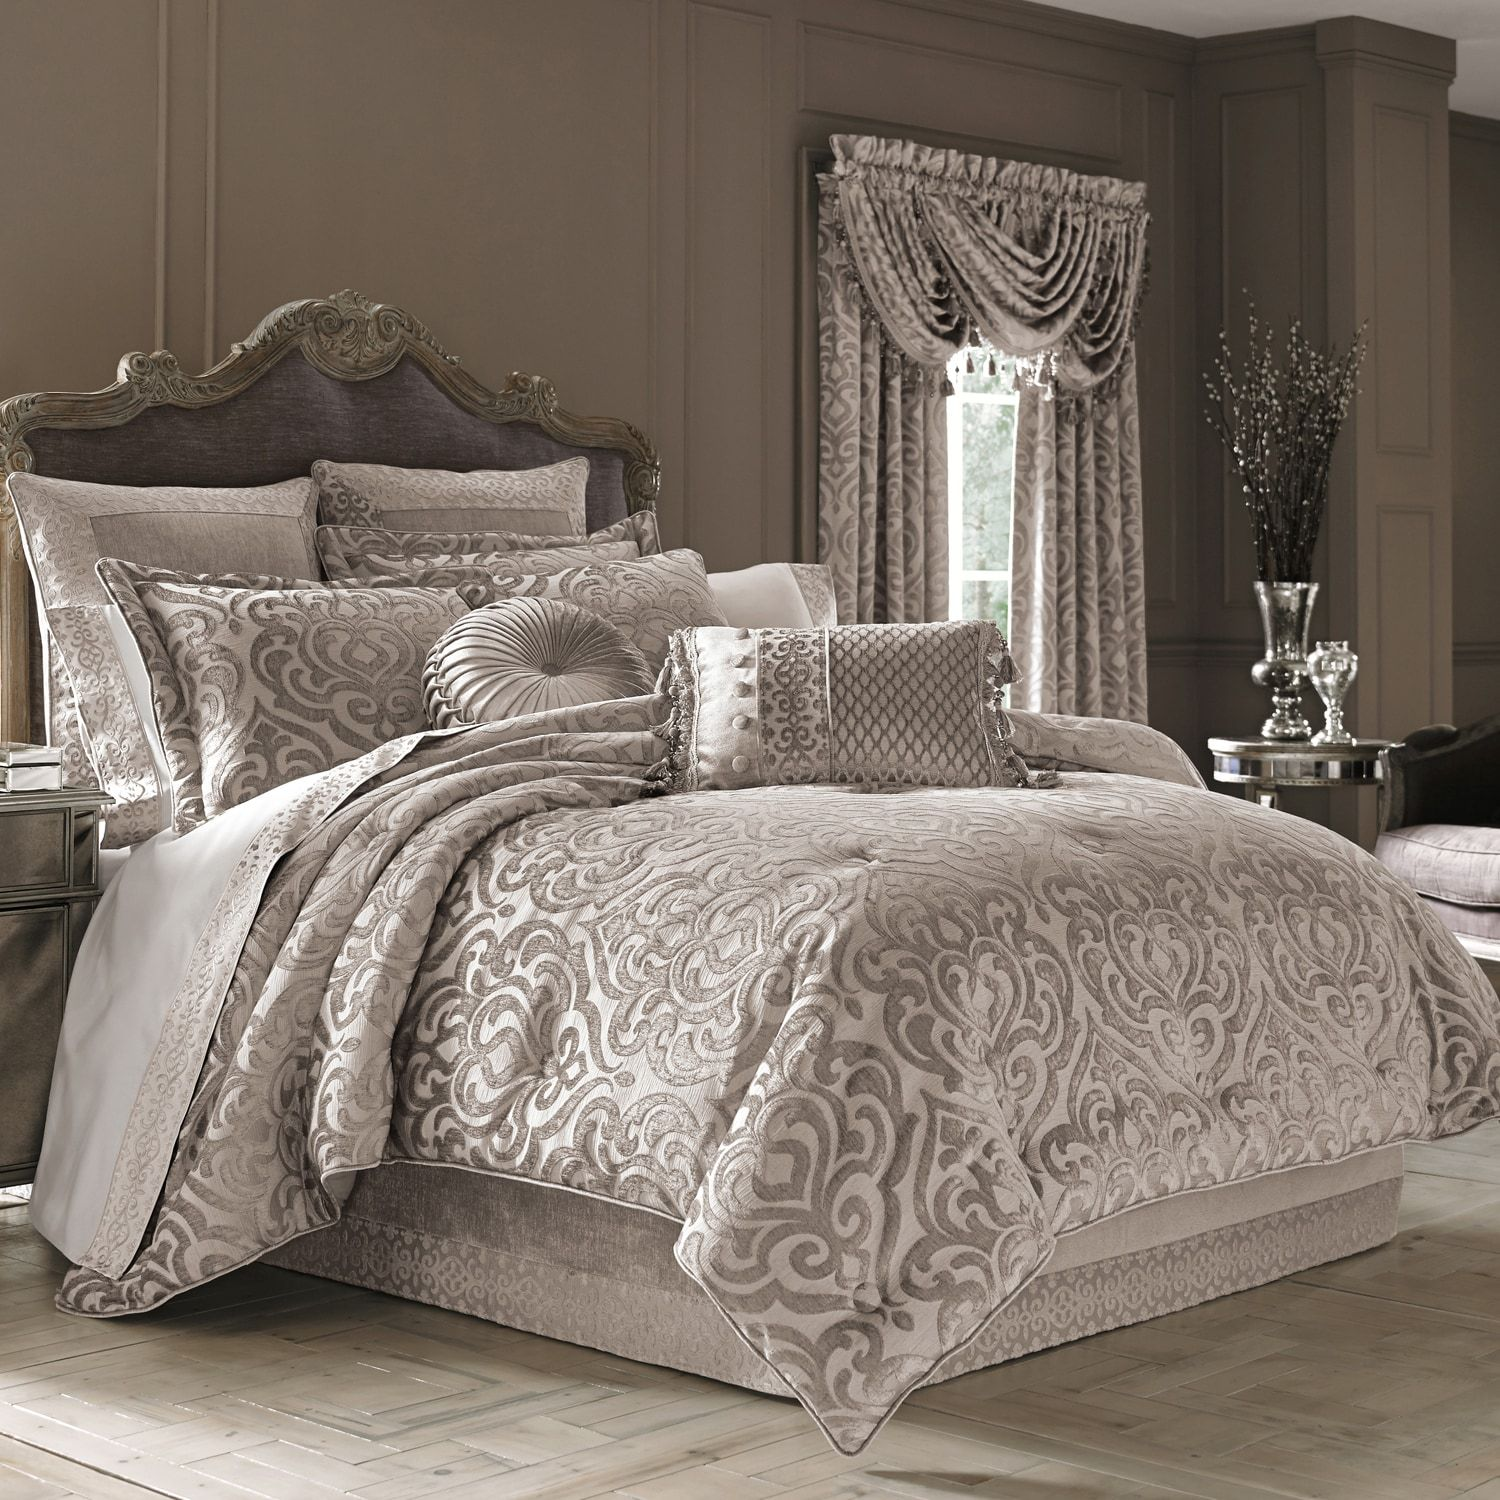 Sydney Pearl Full Comforter Set In